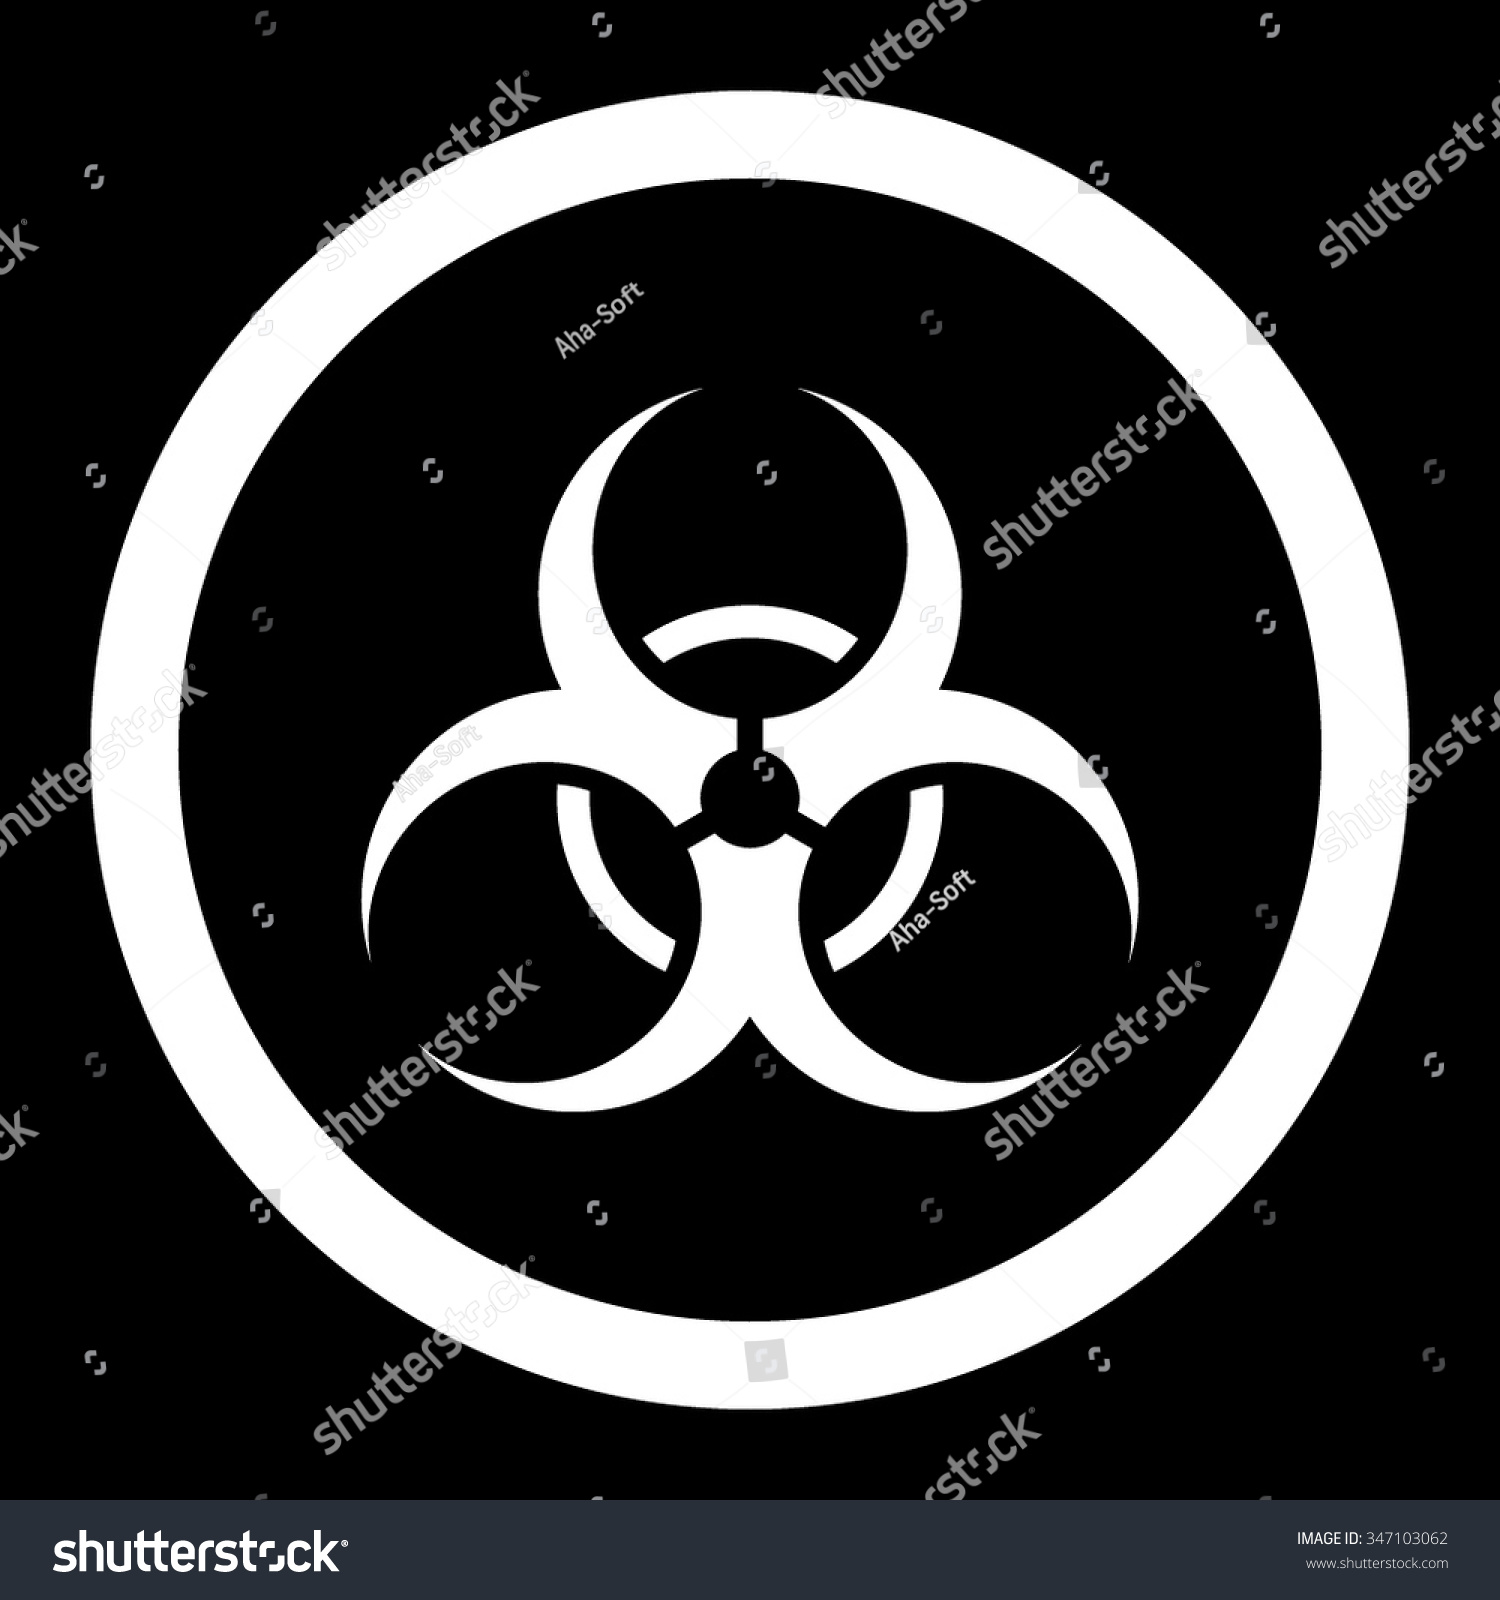 Toxic symbol black vector icon network equipment list critical biohazard symbol vector icon style flat stock vector 347103062 stock vector biohazard symbol vector icon style biocorpaavc Images